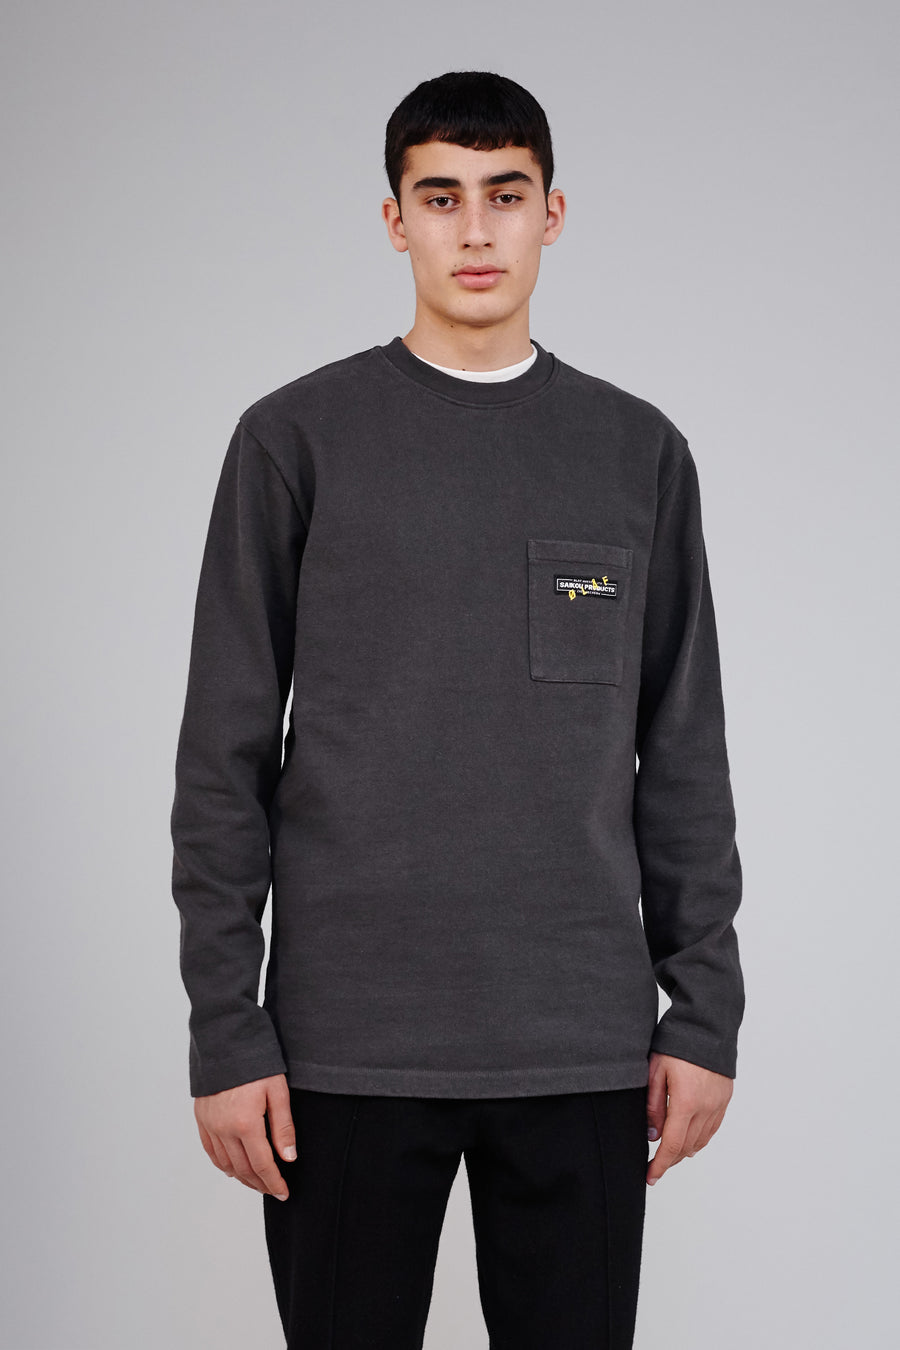 Worker Pocket Heavy Sweater Dark Grey, This dark grey worker sweater has a chest pocket big enough to carry your passport along with your completed VISAS. It features the SAIKOU PRODUCTS label with a yellow ØLÅF embroidery, good for every season.